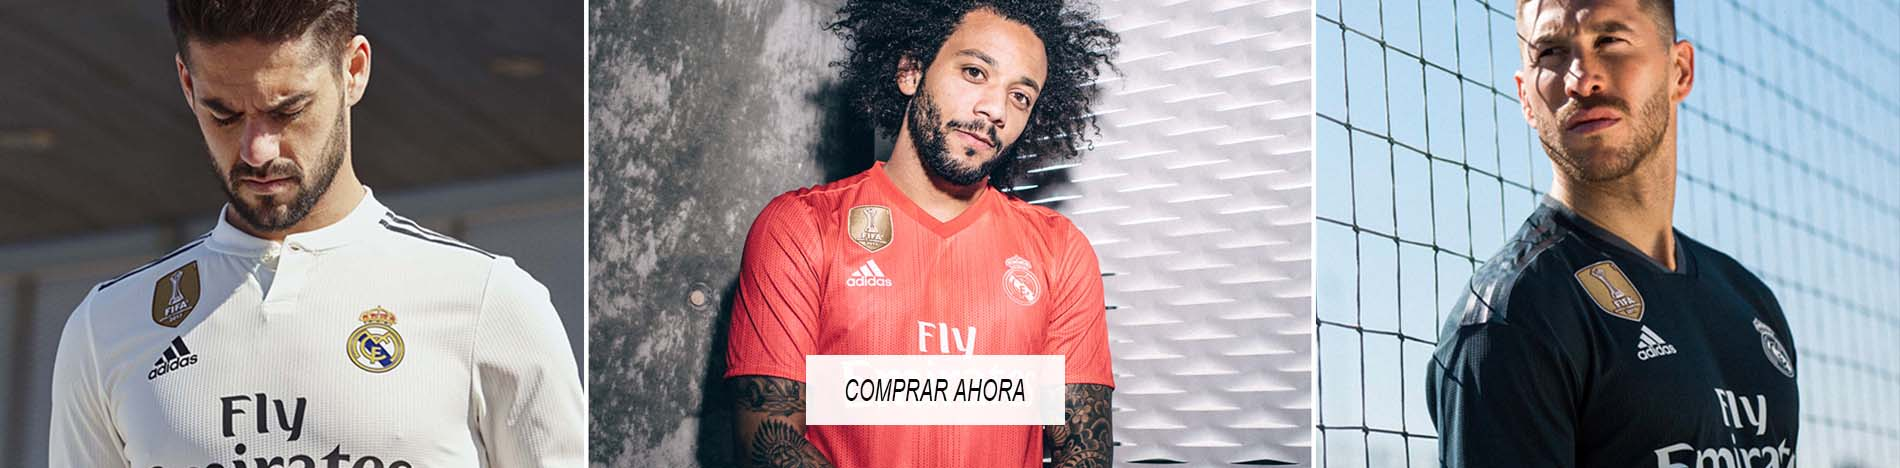 camiseta real madrid baratas 2018-2019